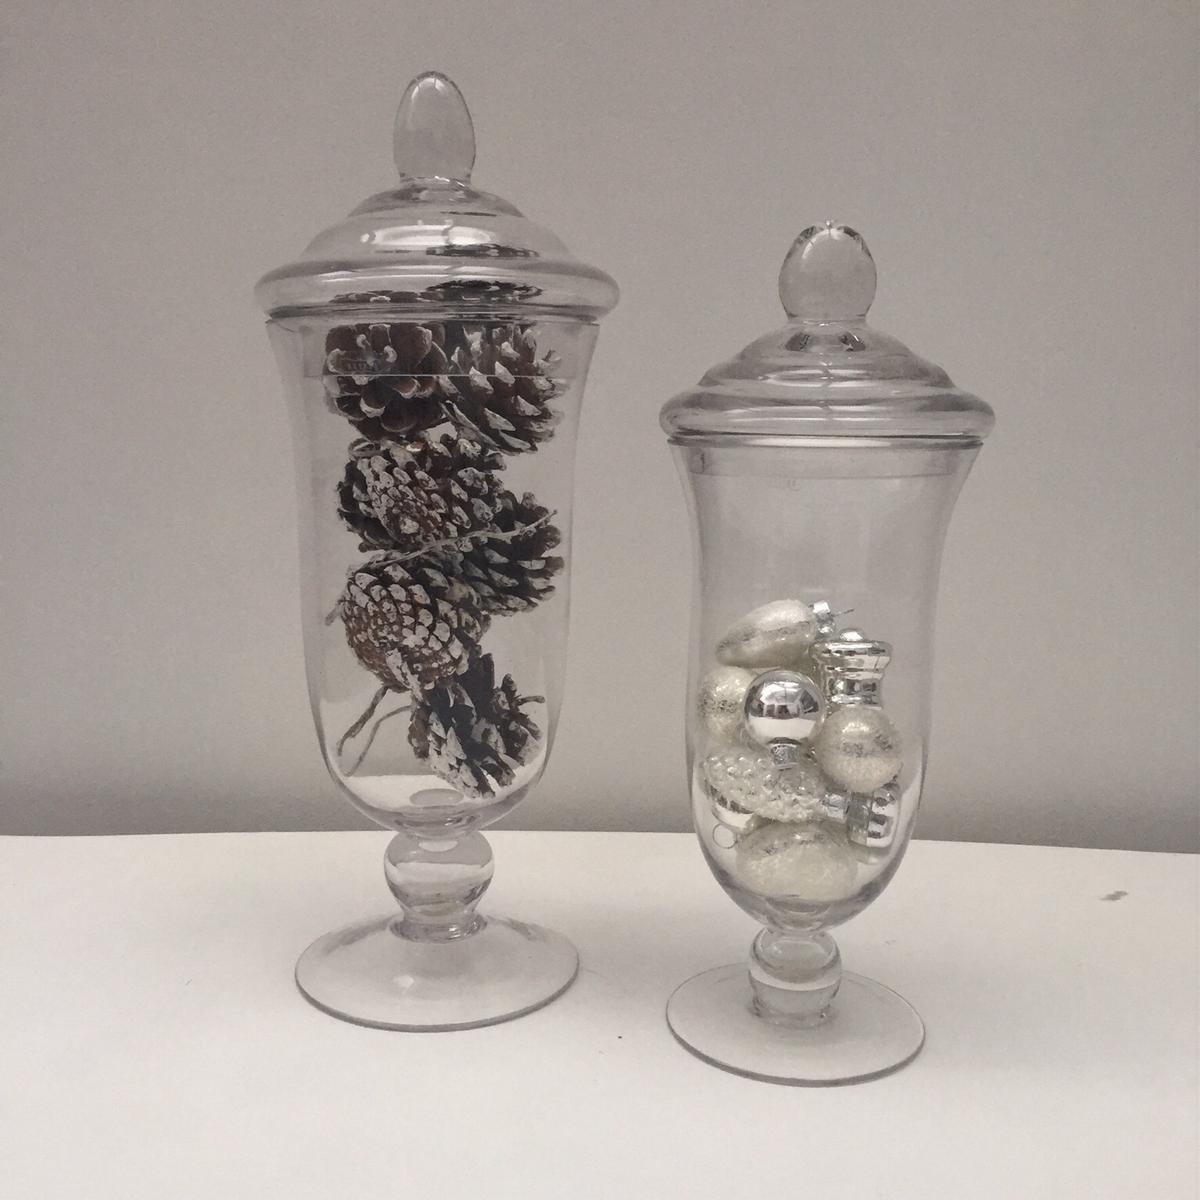 Bathroom Canisters Set Of 2 Tall Glass Bon Bon Jars Canisters